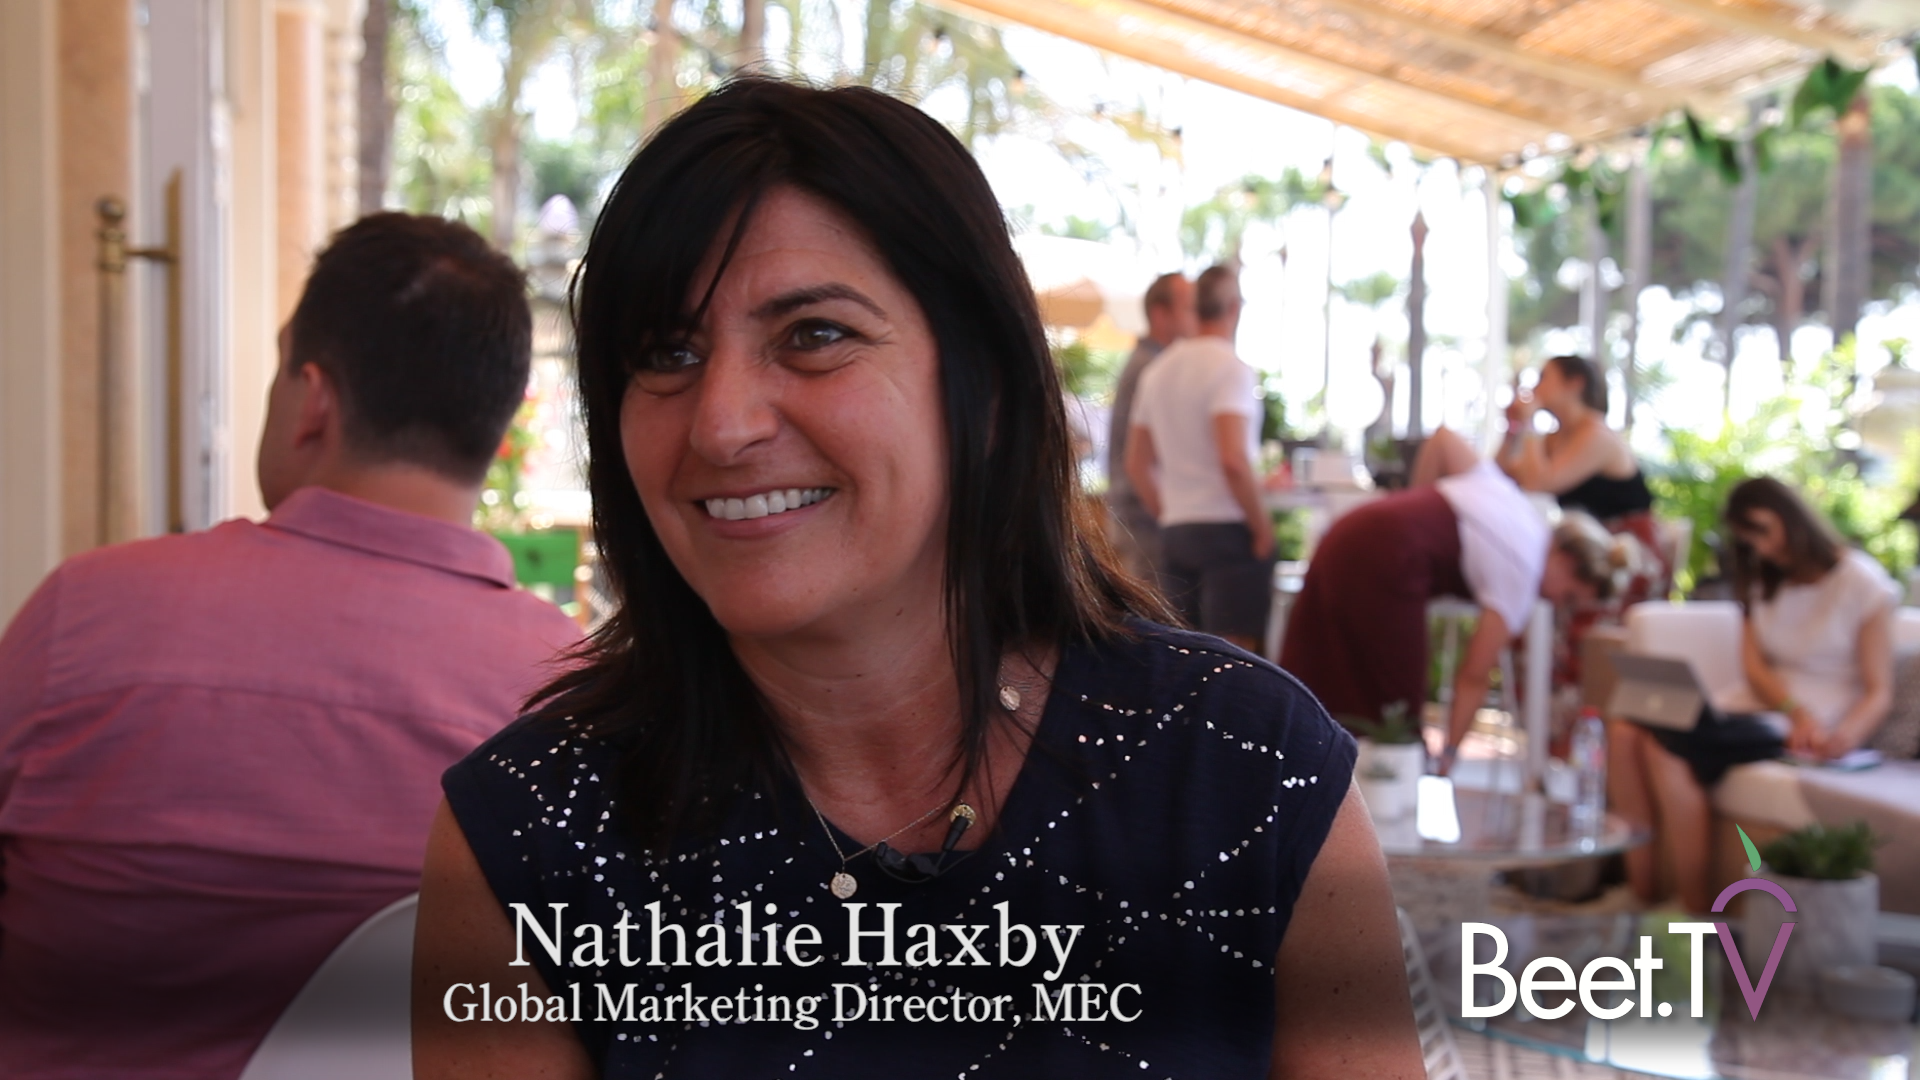 Tracking The Consumer Purchase Journey With MEC's Nathalie Haxby